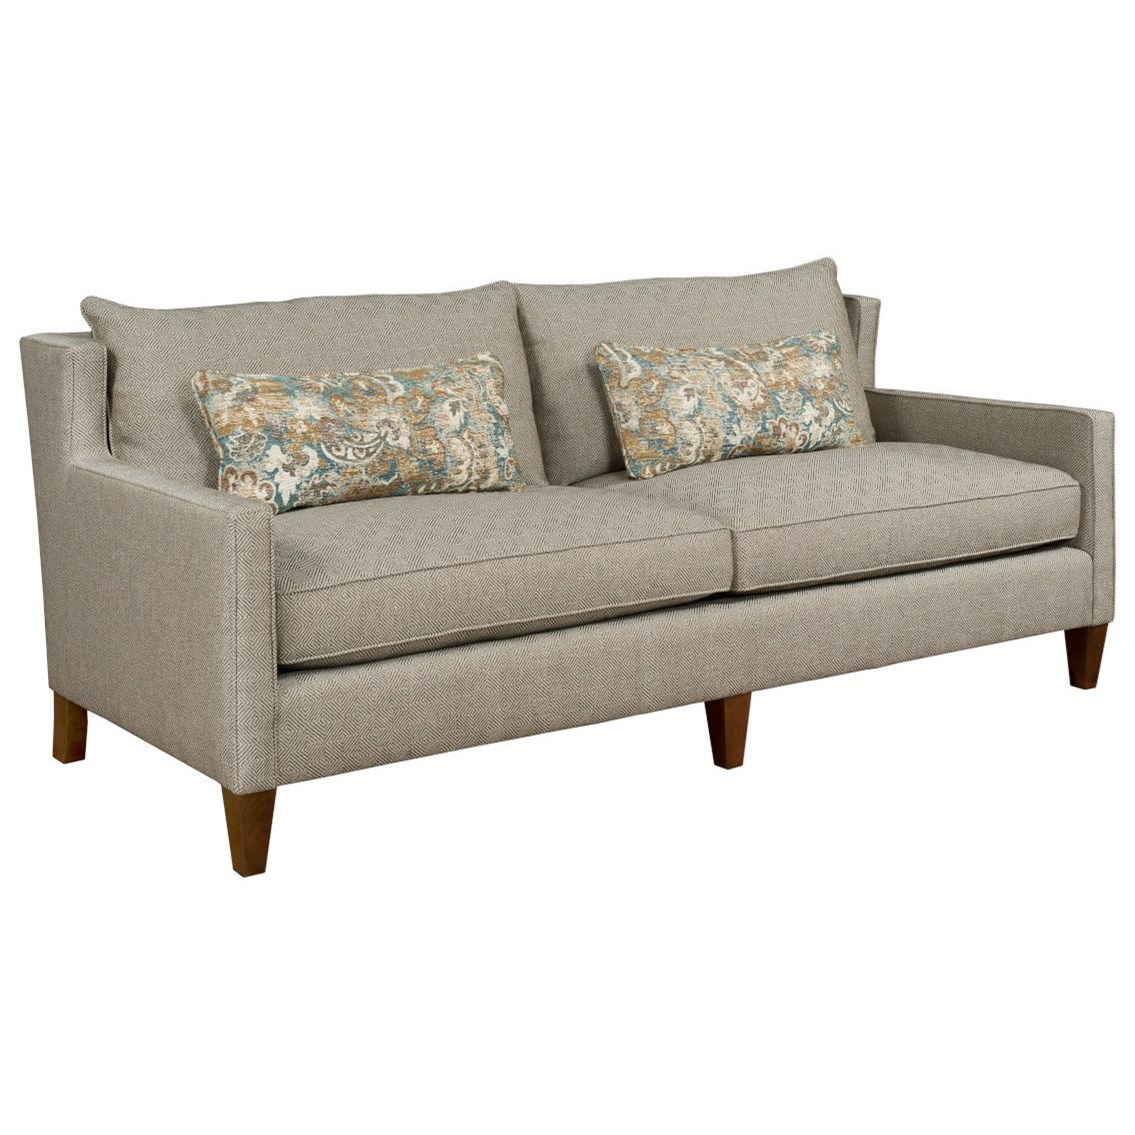 Alta Sofa by Kincaid Furniture at Powell's Furniture and Mattress